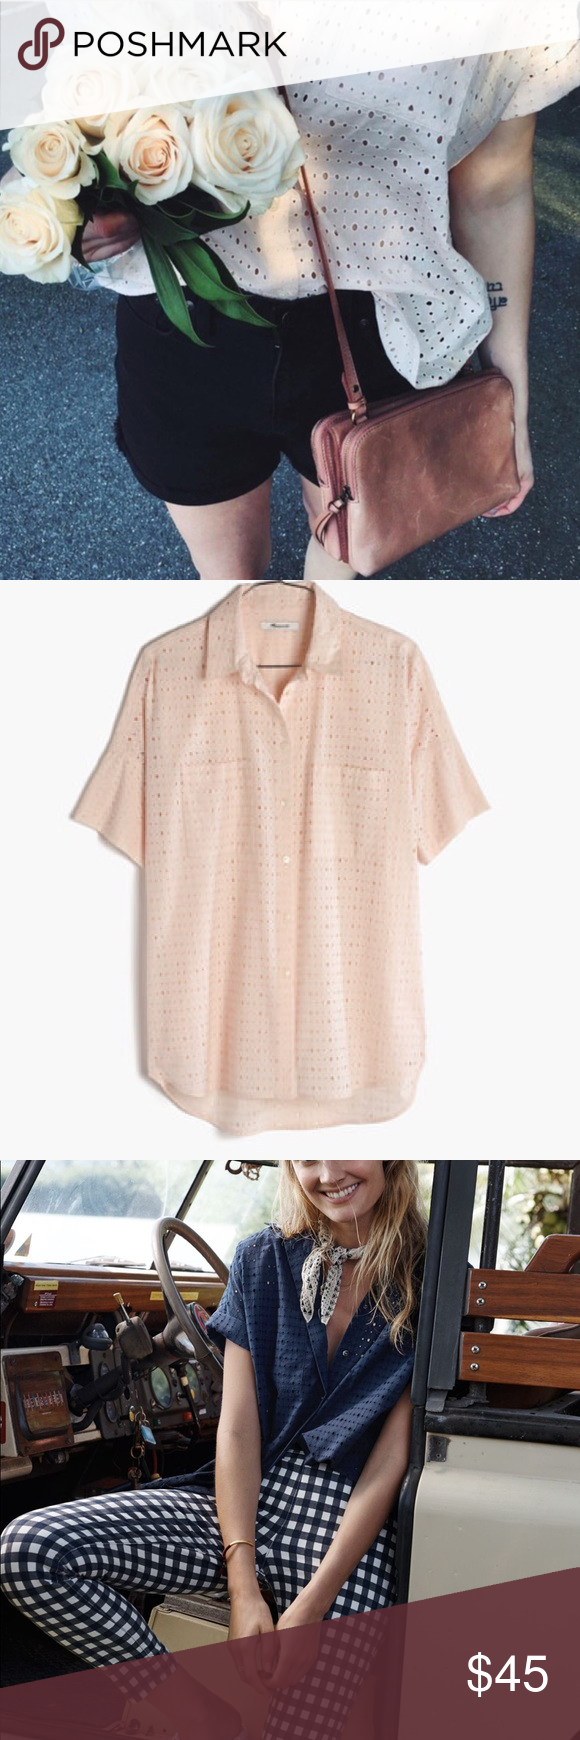 088c1b81 Madewell Eyelet Courier shirt Excellent condition PRODUCT DETAILS We remade  our perfectly oversized, slightly boxy shirt in breezy eyelet lace.